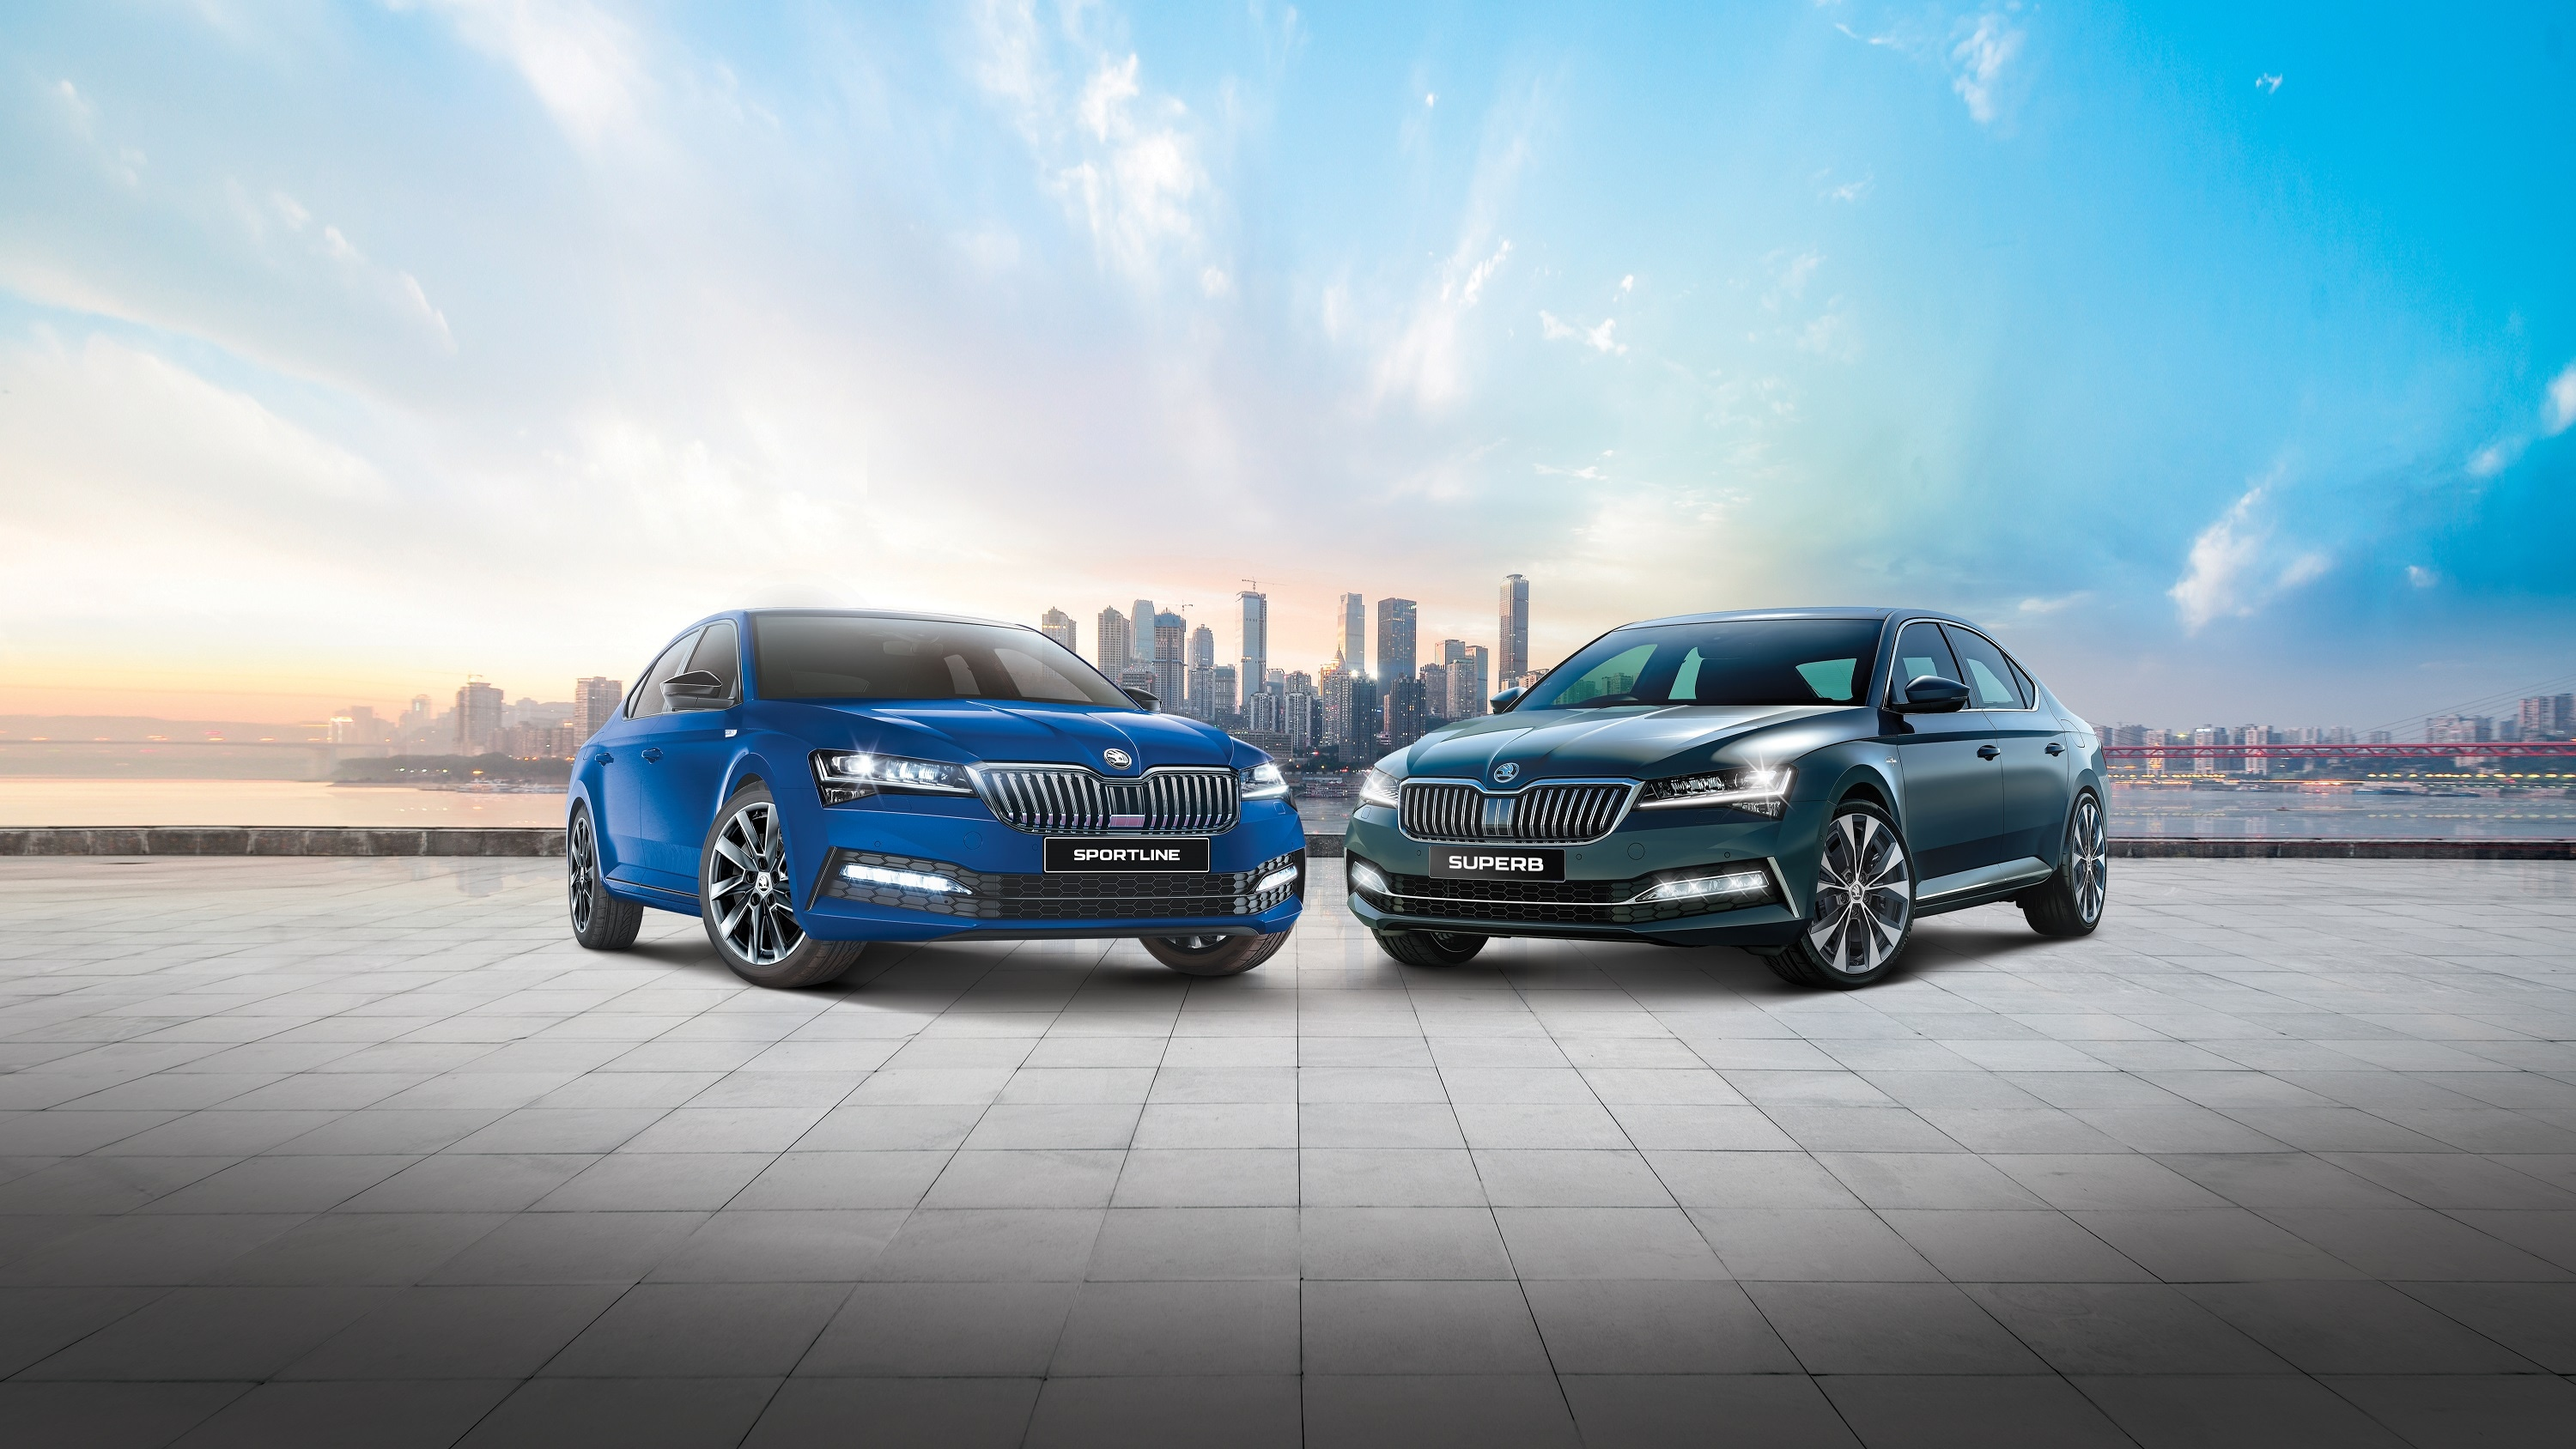 Skoda has unveiled the new range of Superb sedan which now gets several notable updates on the outside and offers cabin upgrades to occupants. Superb Laurin has been priced at <span class='webrupee'>₹</span>31.99 lakh while Klement is priced at <span class='webrupee'>₹</span>34.99 lakh (ex showroom).